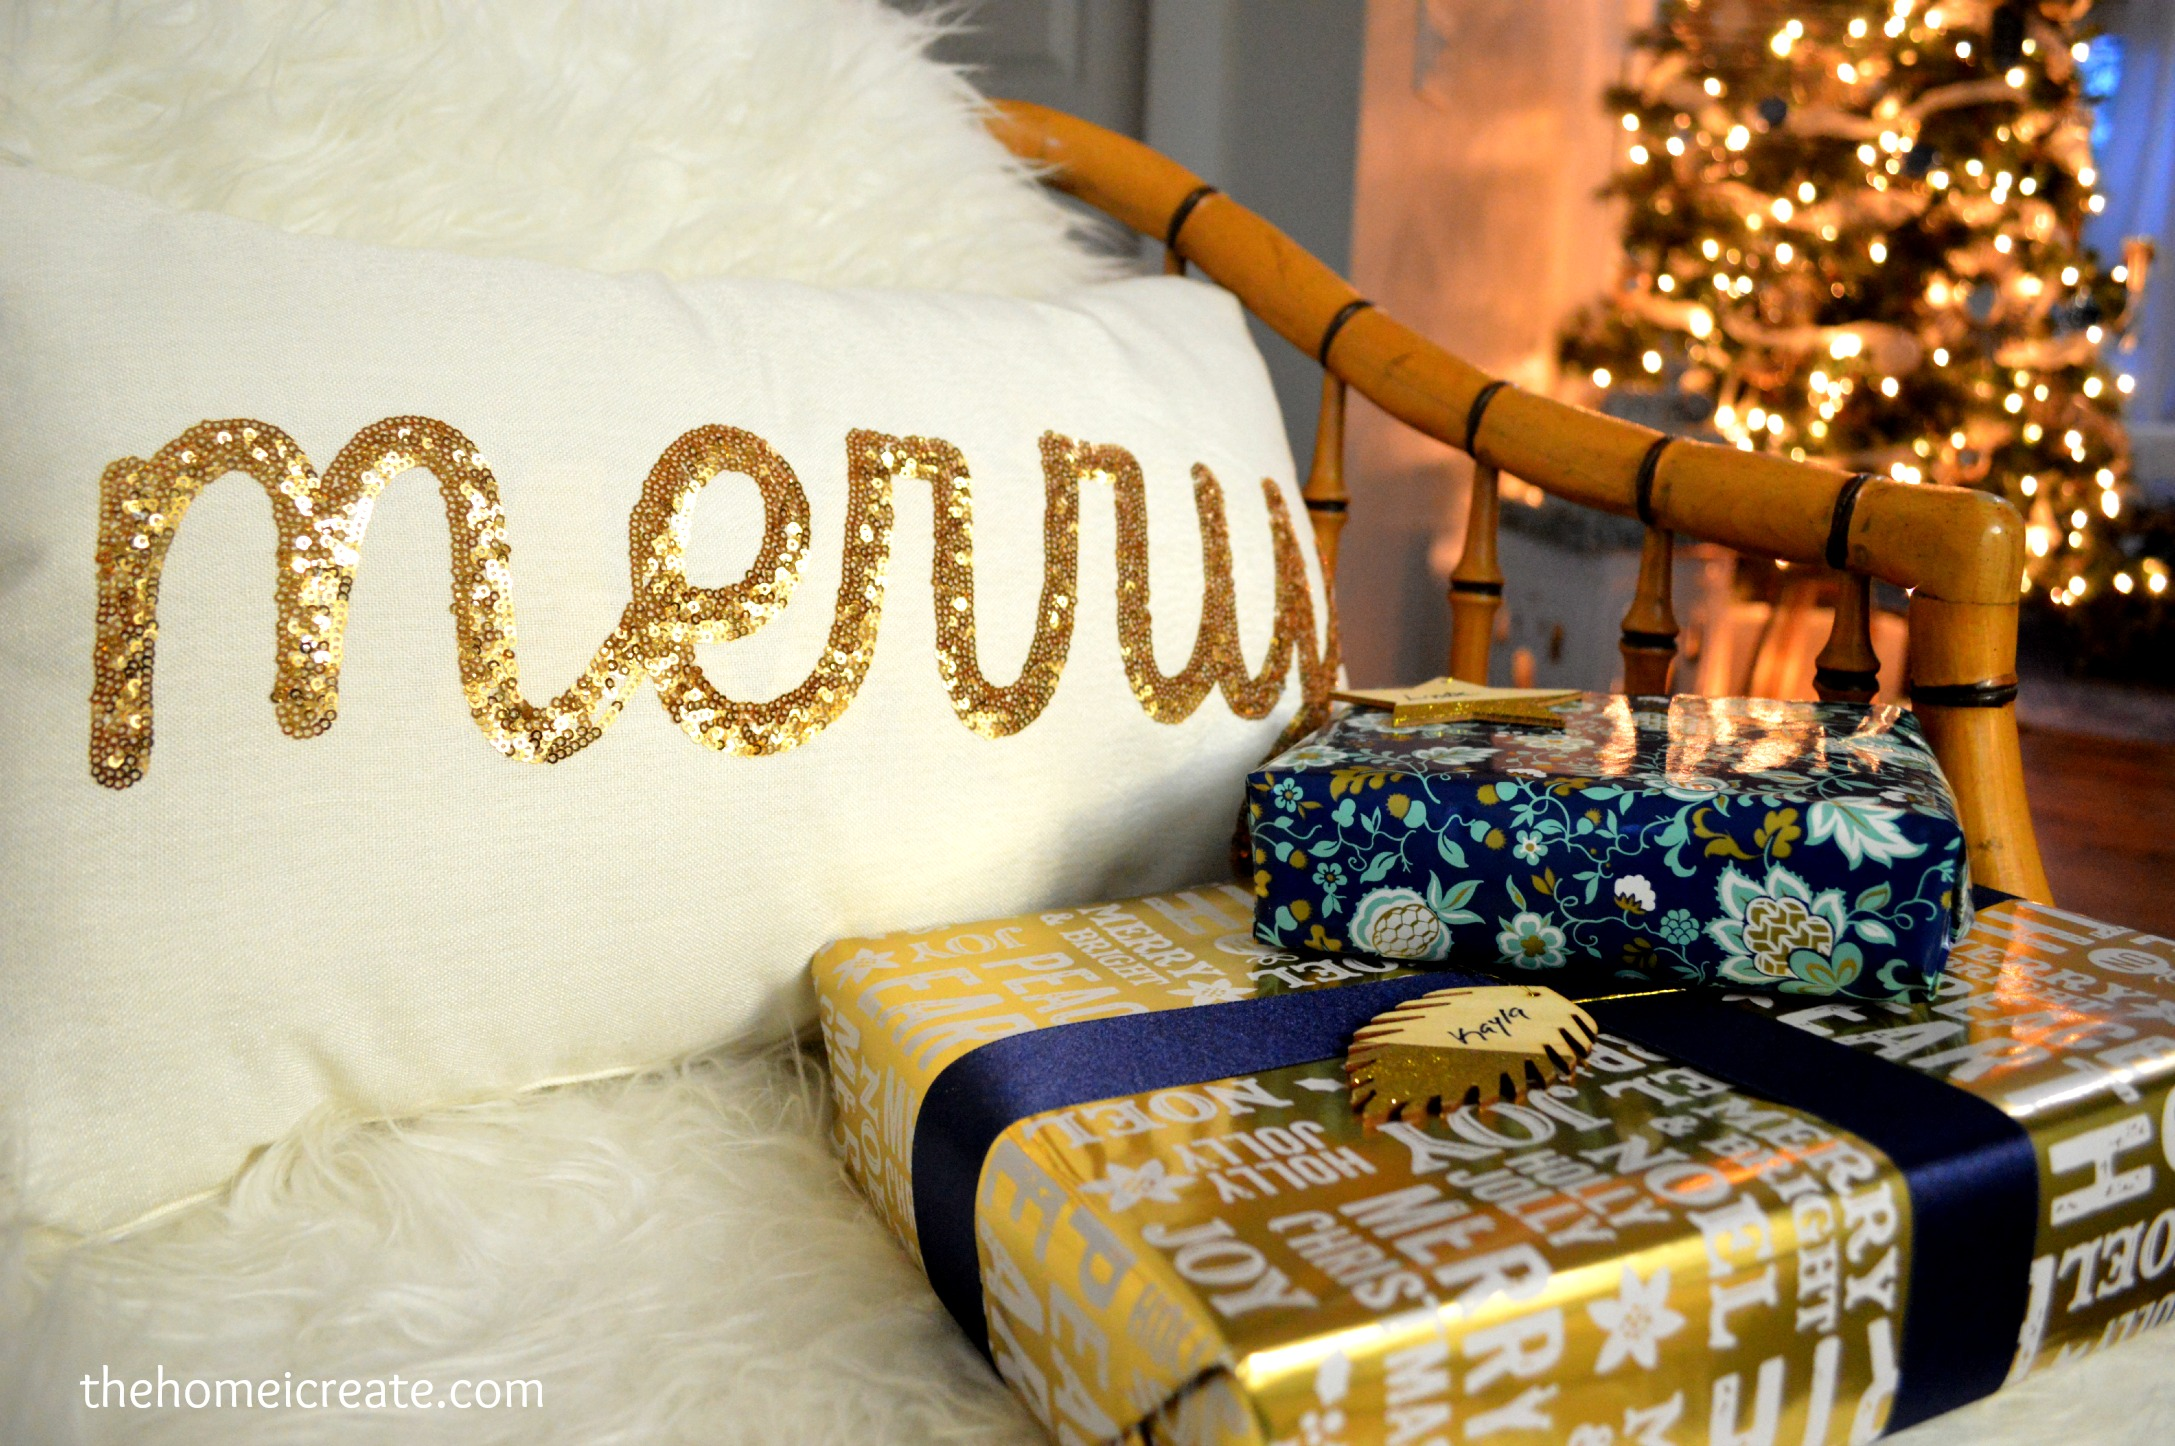 Christmas House Tour - Beautiful and inexpensive Christmas decor. Plus how to DIY table centerpiece. thehomeicreate.com   Instagram: thehomeicreate